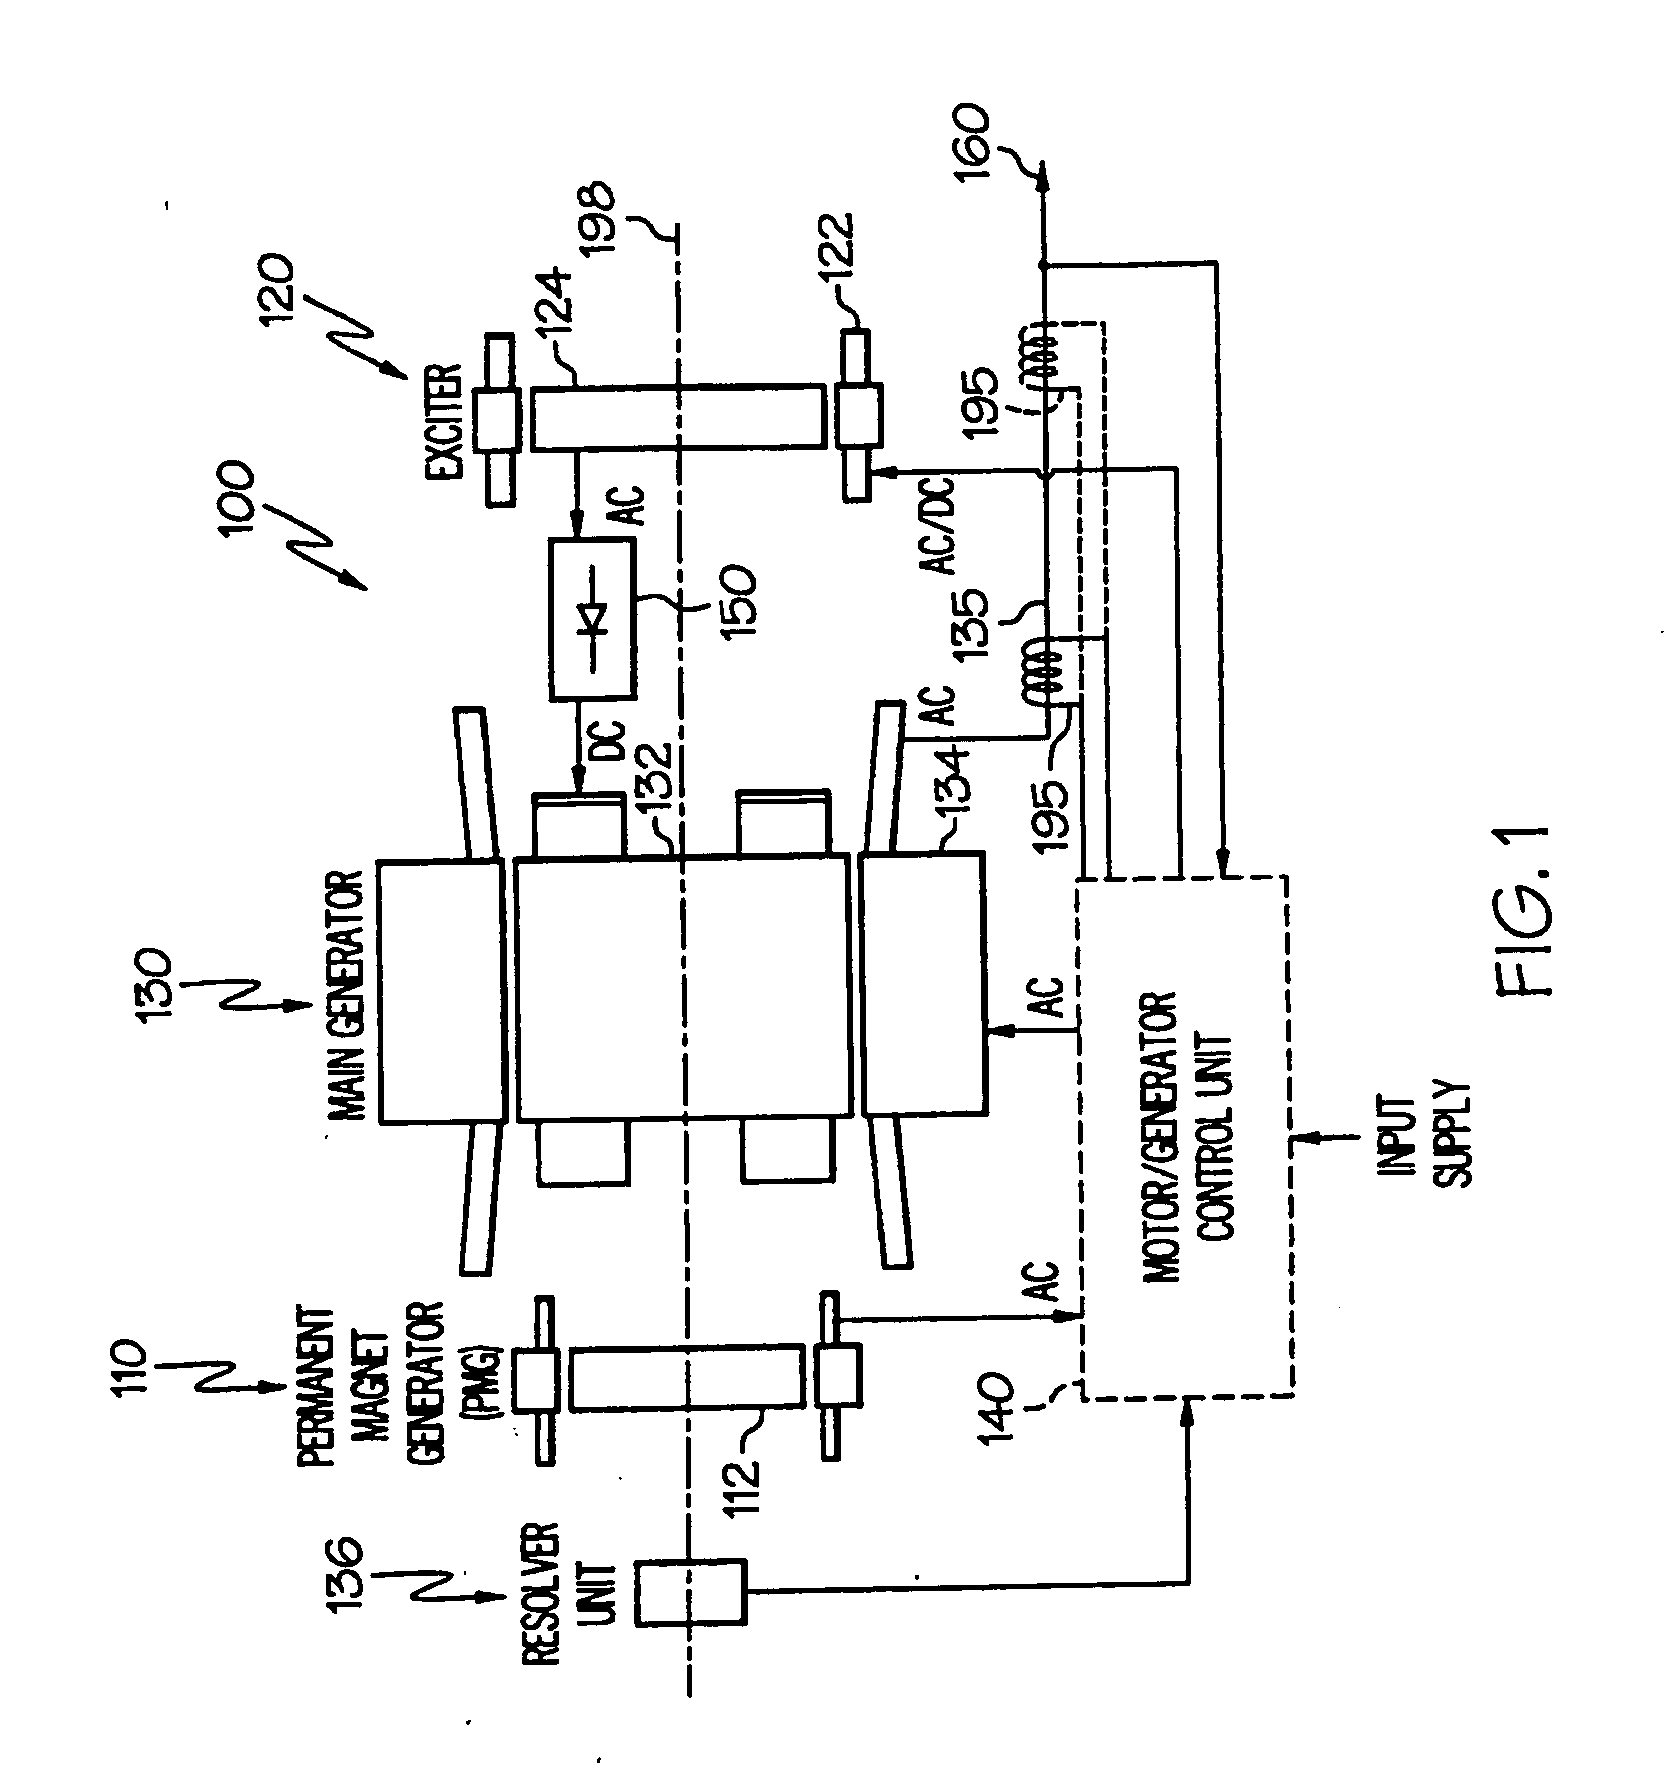 hight resolution of be124 sel generator control panel wiring diagram aircraft power generation astronics aircraft starter